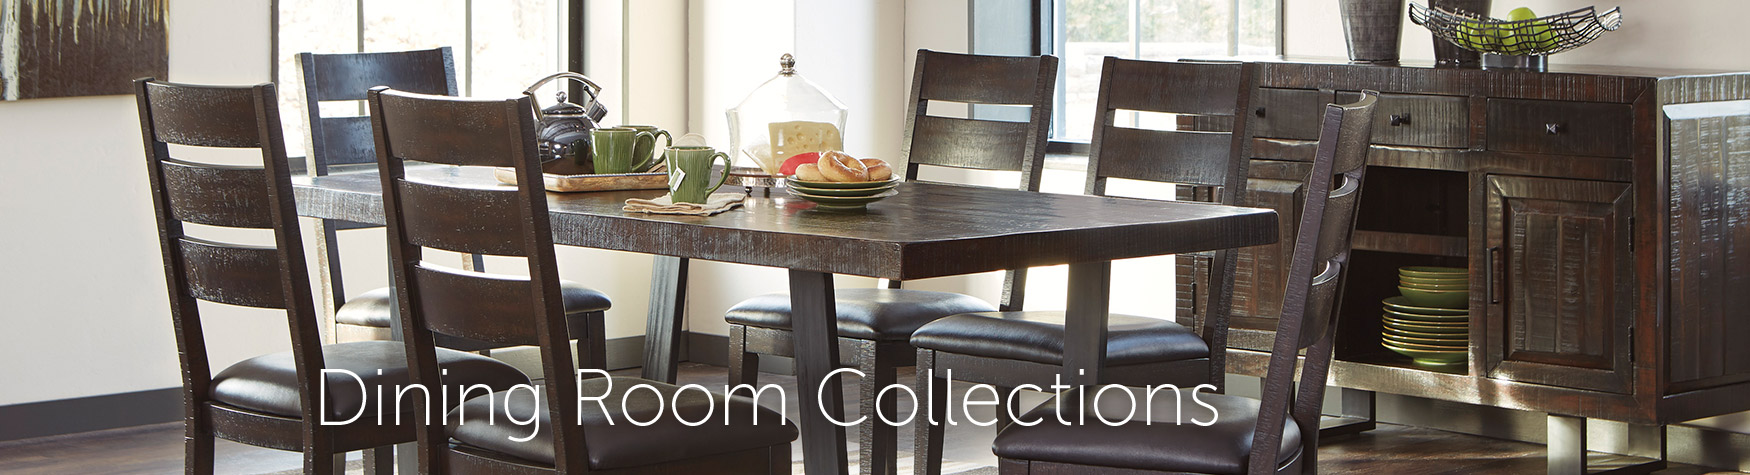 dining-room-collection-banner.jpg